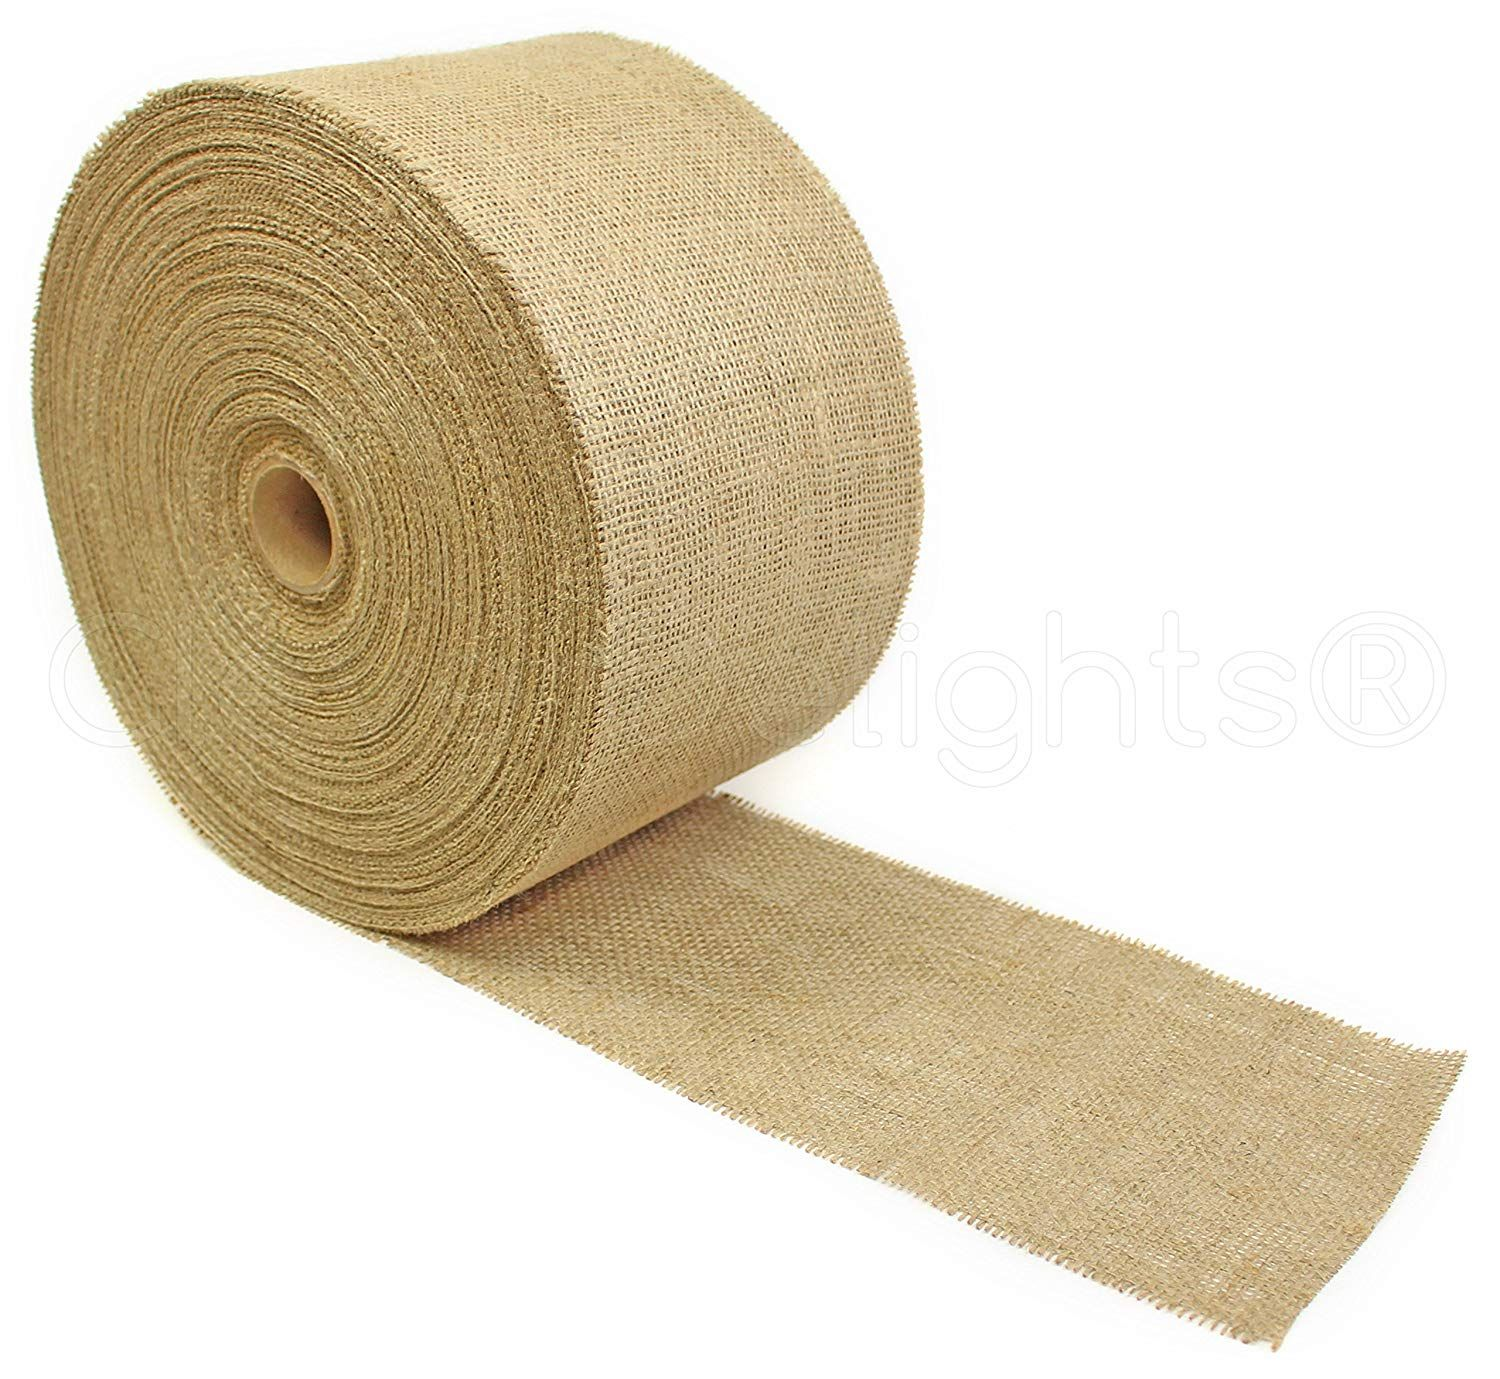 Cleverdelights 6 Natural Burlap Roll 100 Yards Eco Friendly Jute Burlap Fabric 6 Inch You Can Get More Details By In 2020 Burlap Rolls Burlap Fabric Burlap